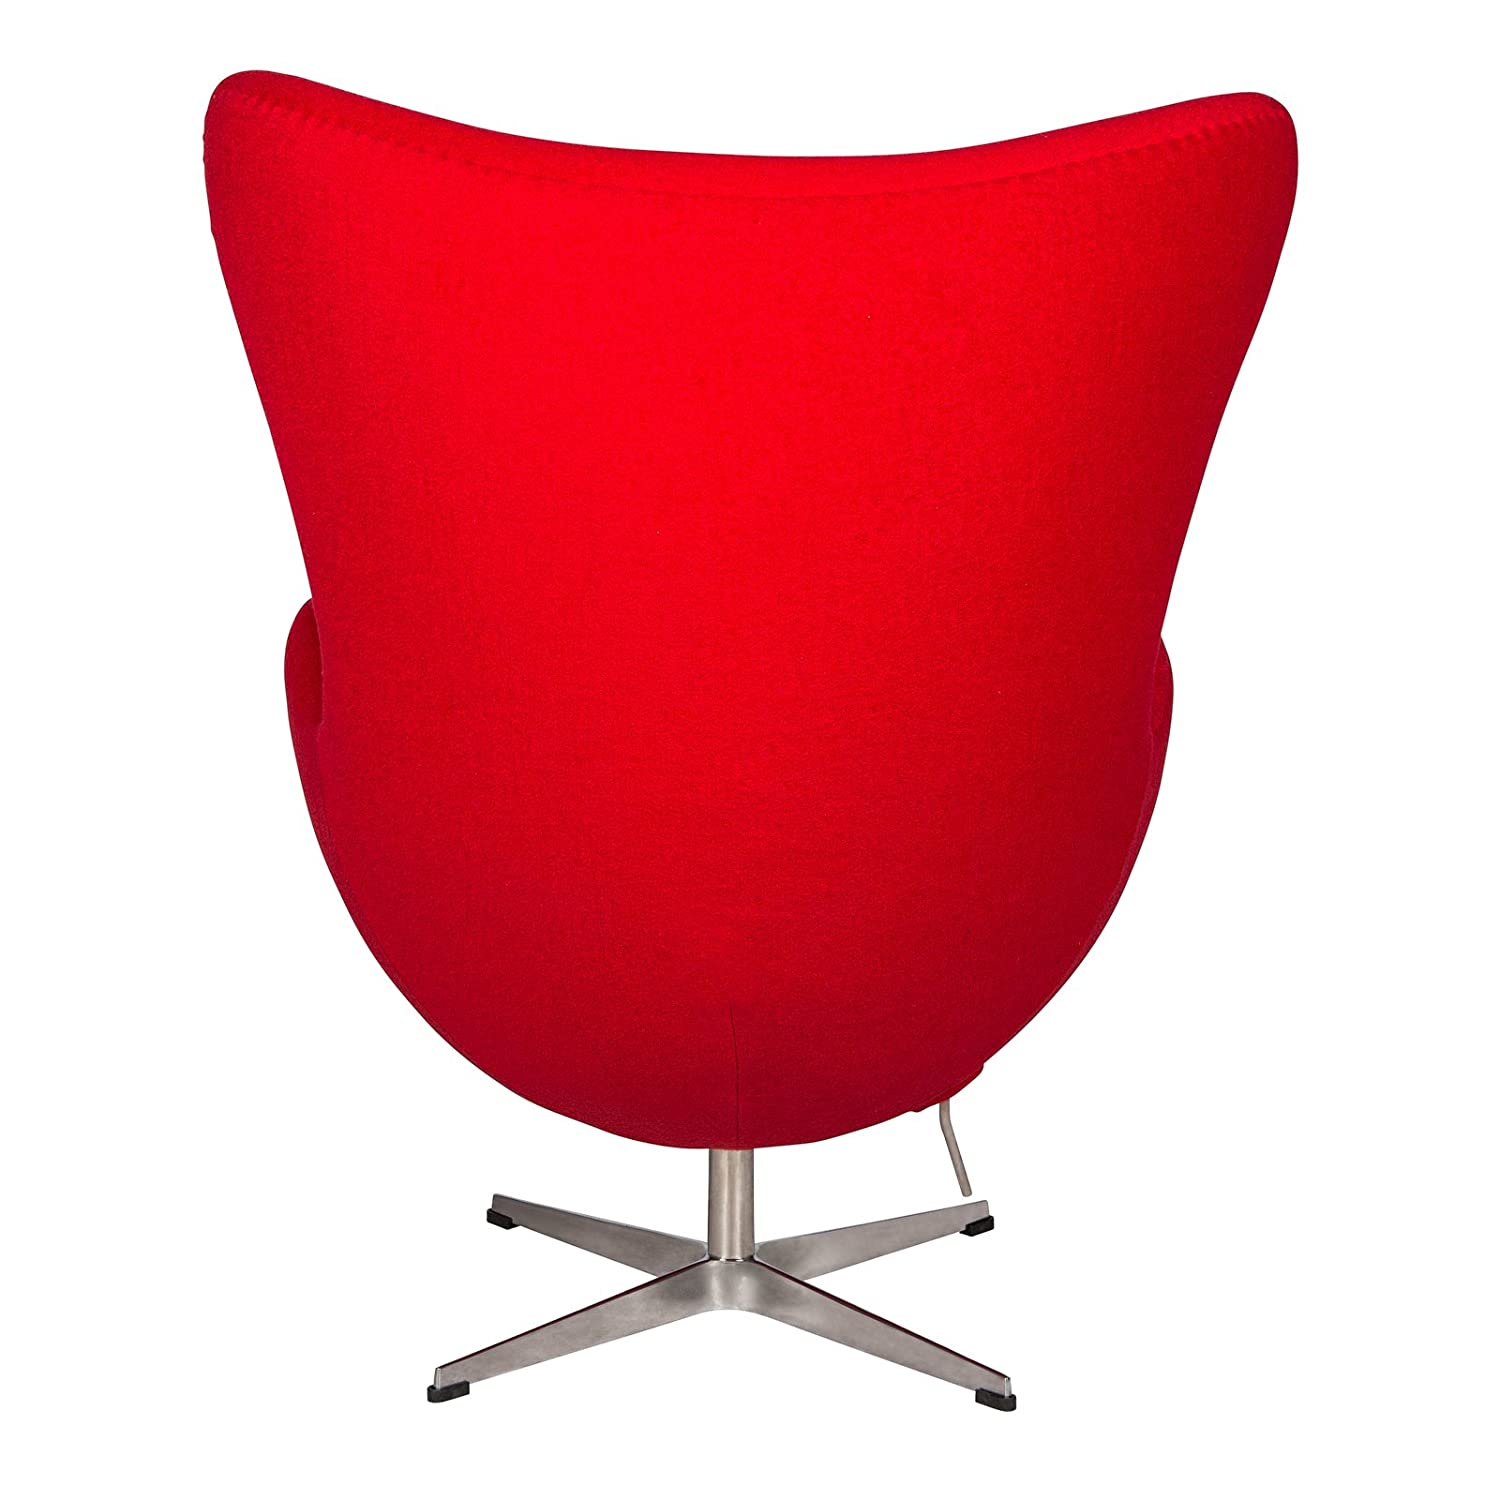 Amazon LeisureMod Arne Jacobsen Egg Style Modern Accent Chair